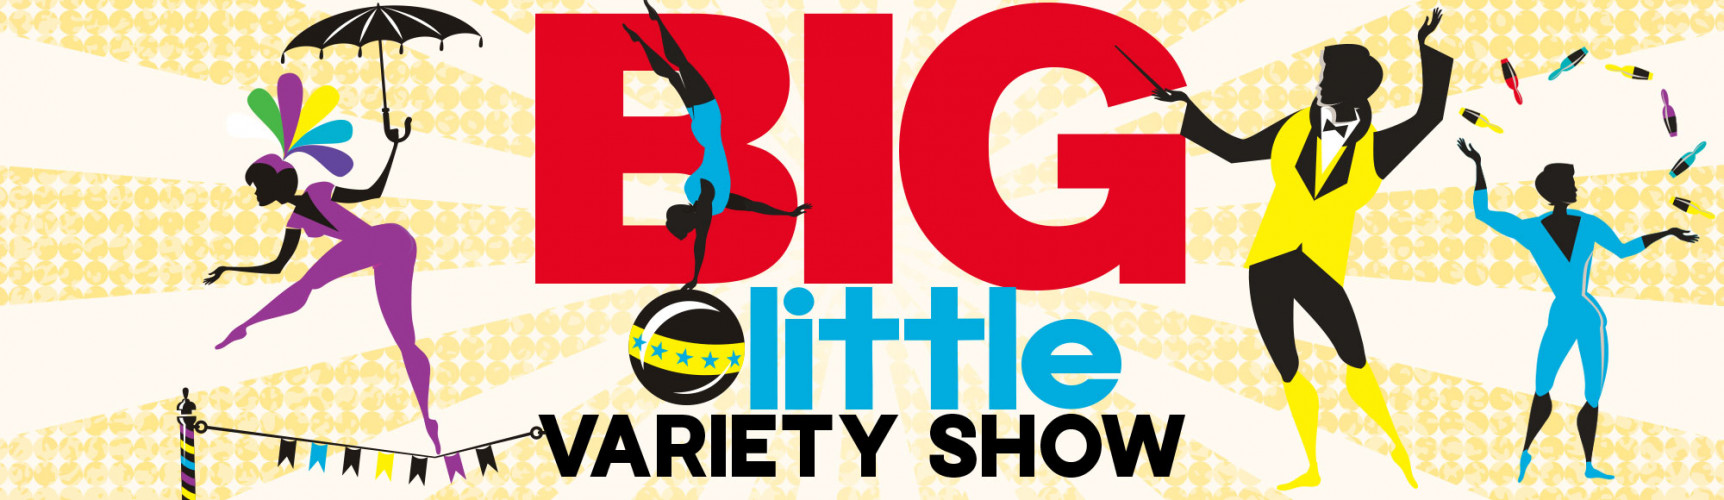 The Big Little Variety Show | 12% Off Tickets